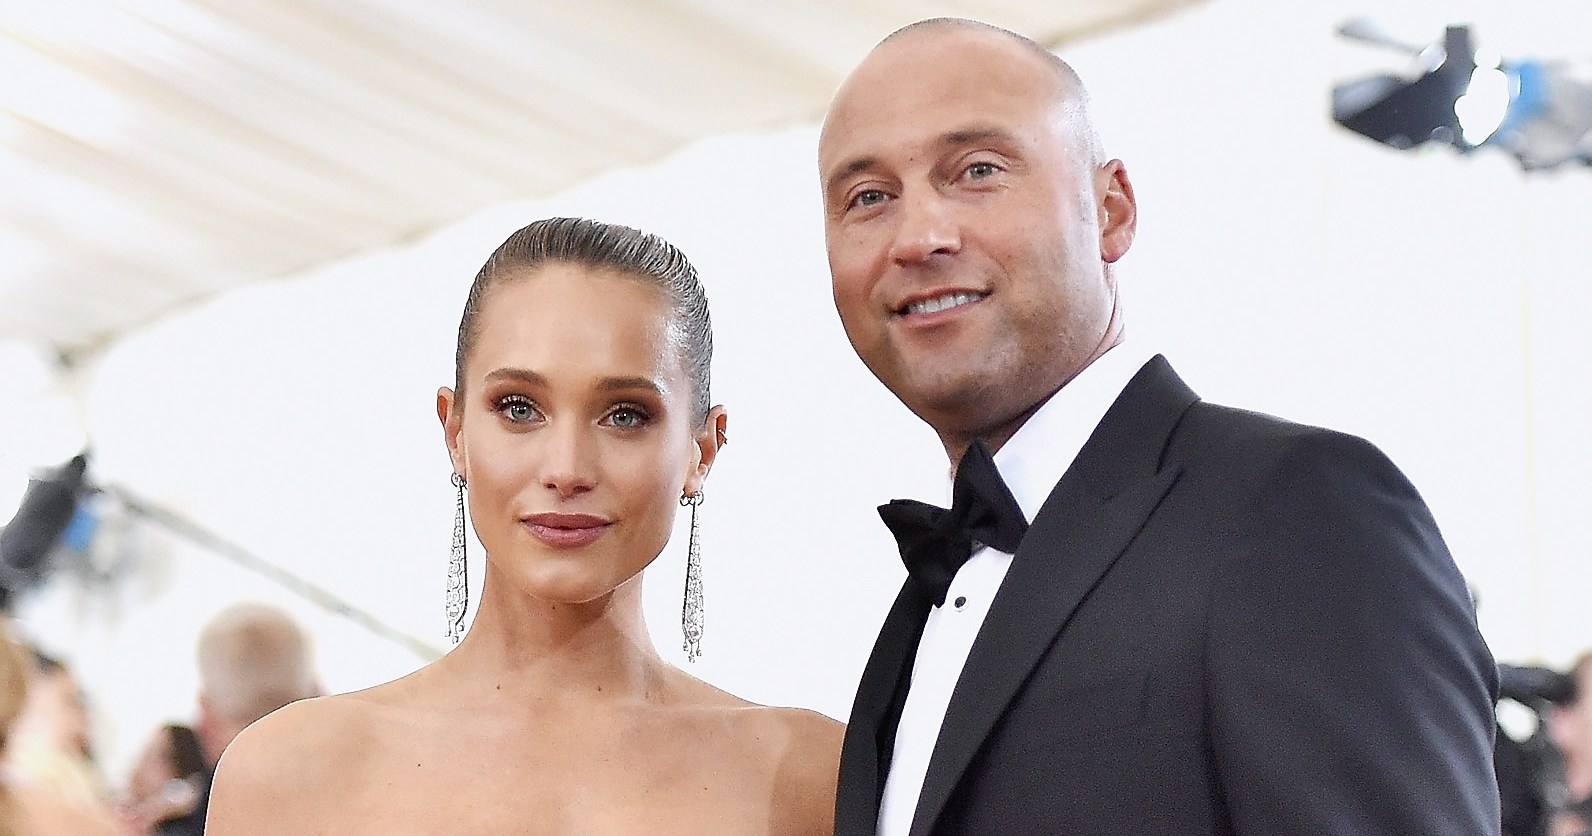 Derek Jeter on 'Raising a Family in Miami' With Wife Hannah Jeter